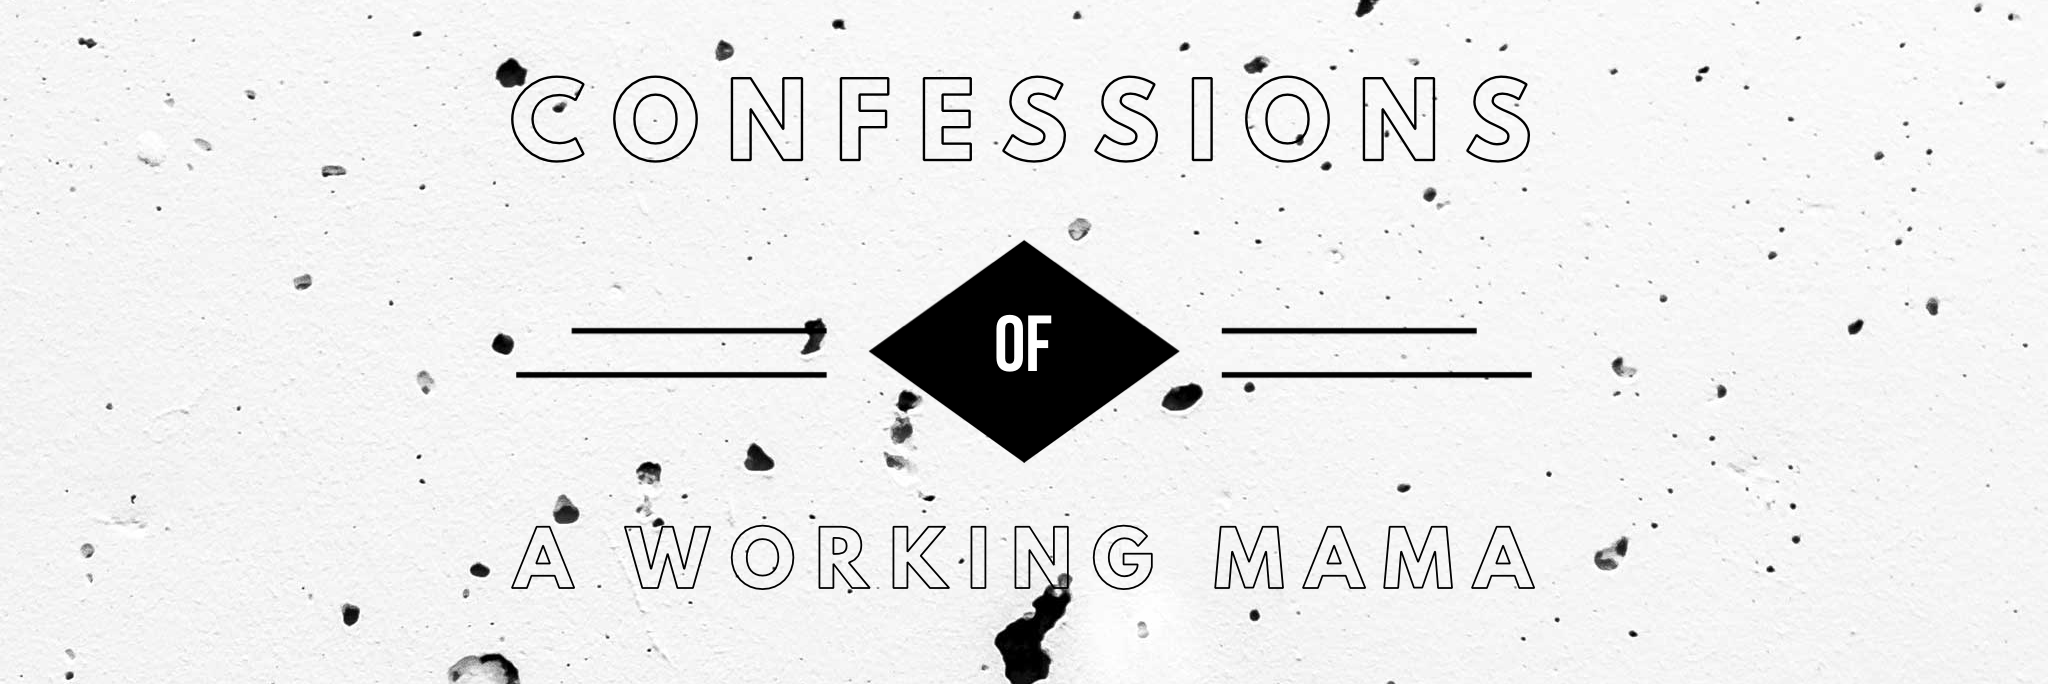 Confessions of a Working Mama